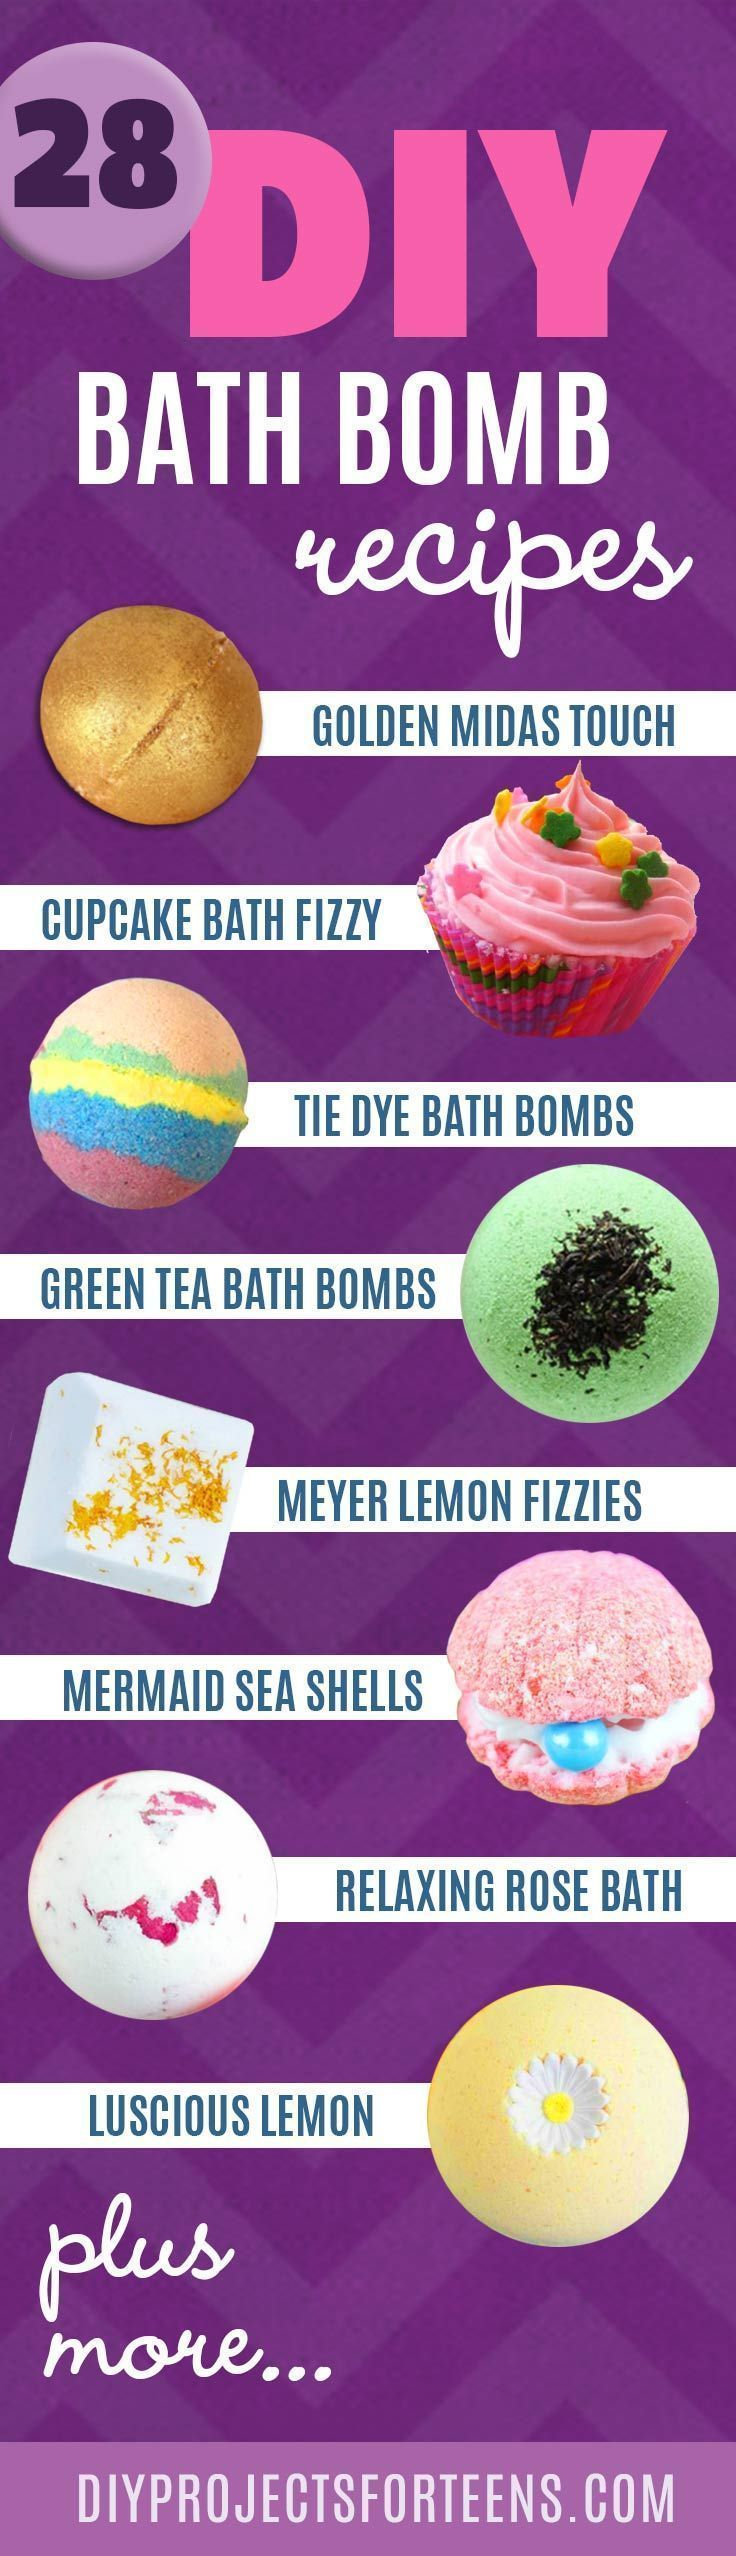 best 25+ diy bath bombs easy ideas on pinterest | bath boms